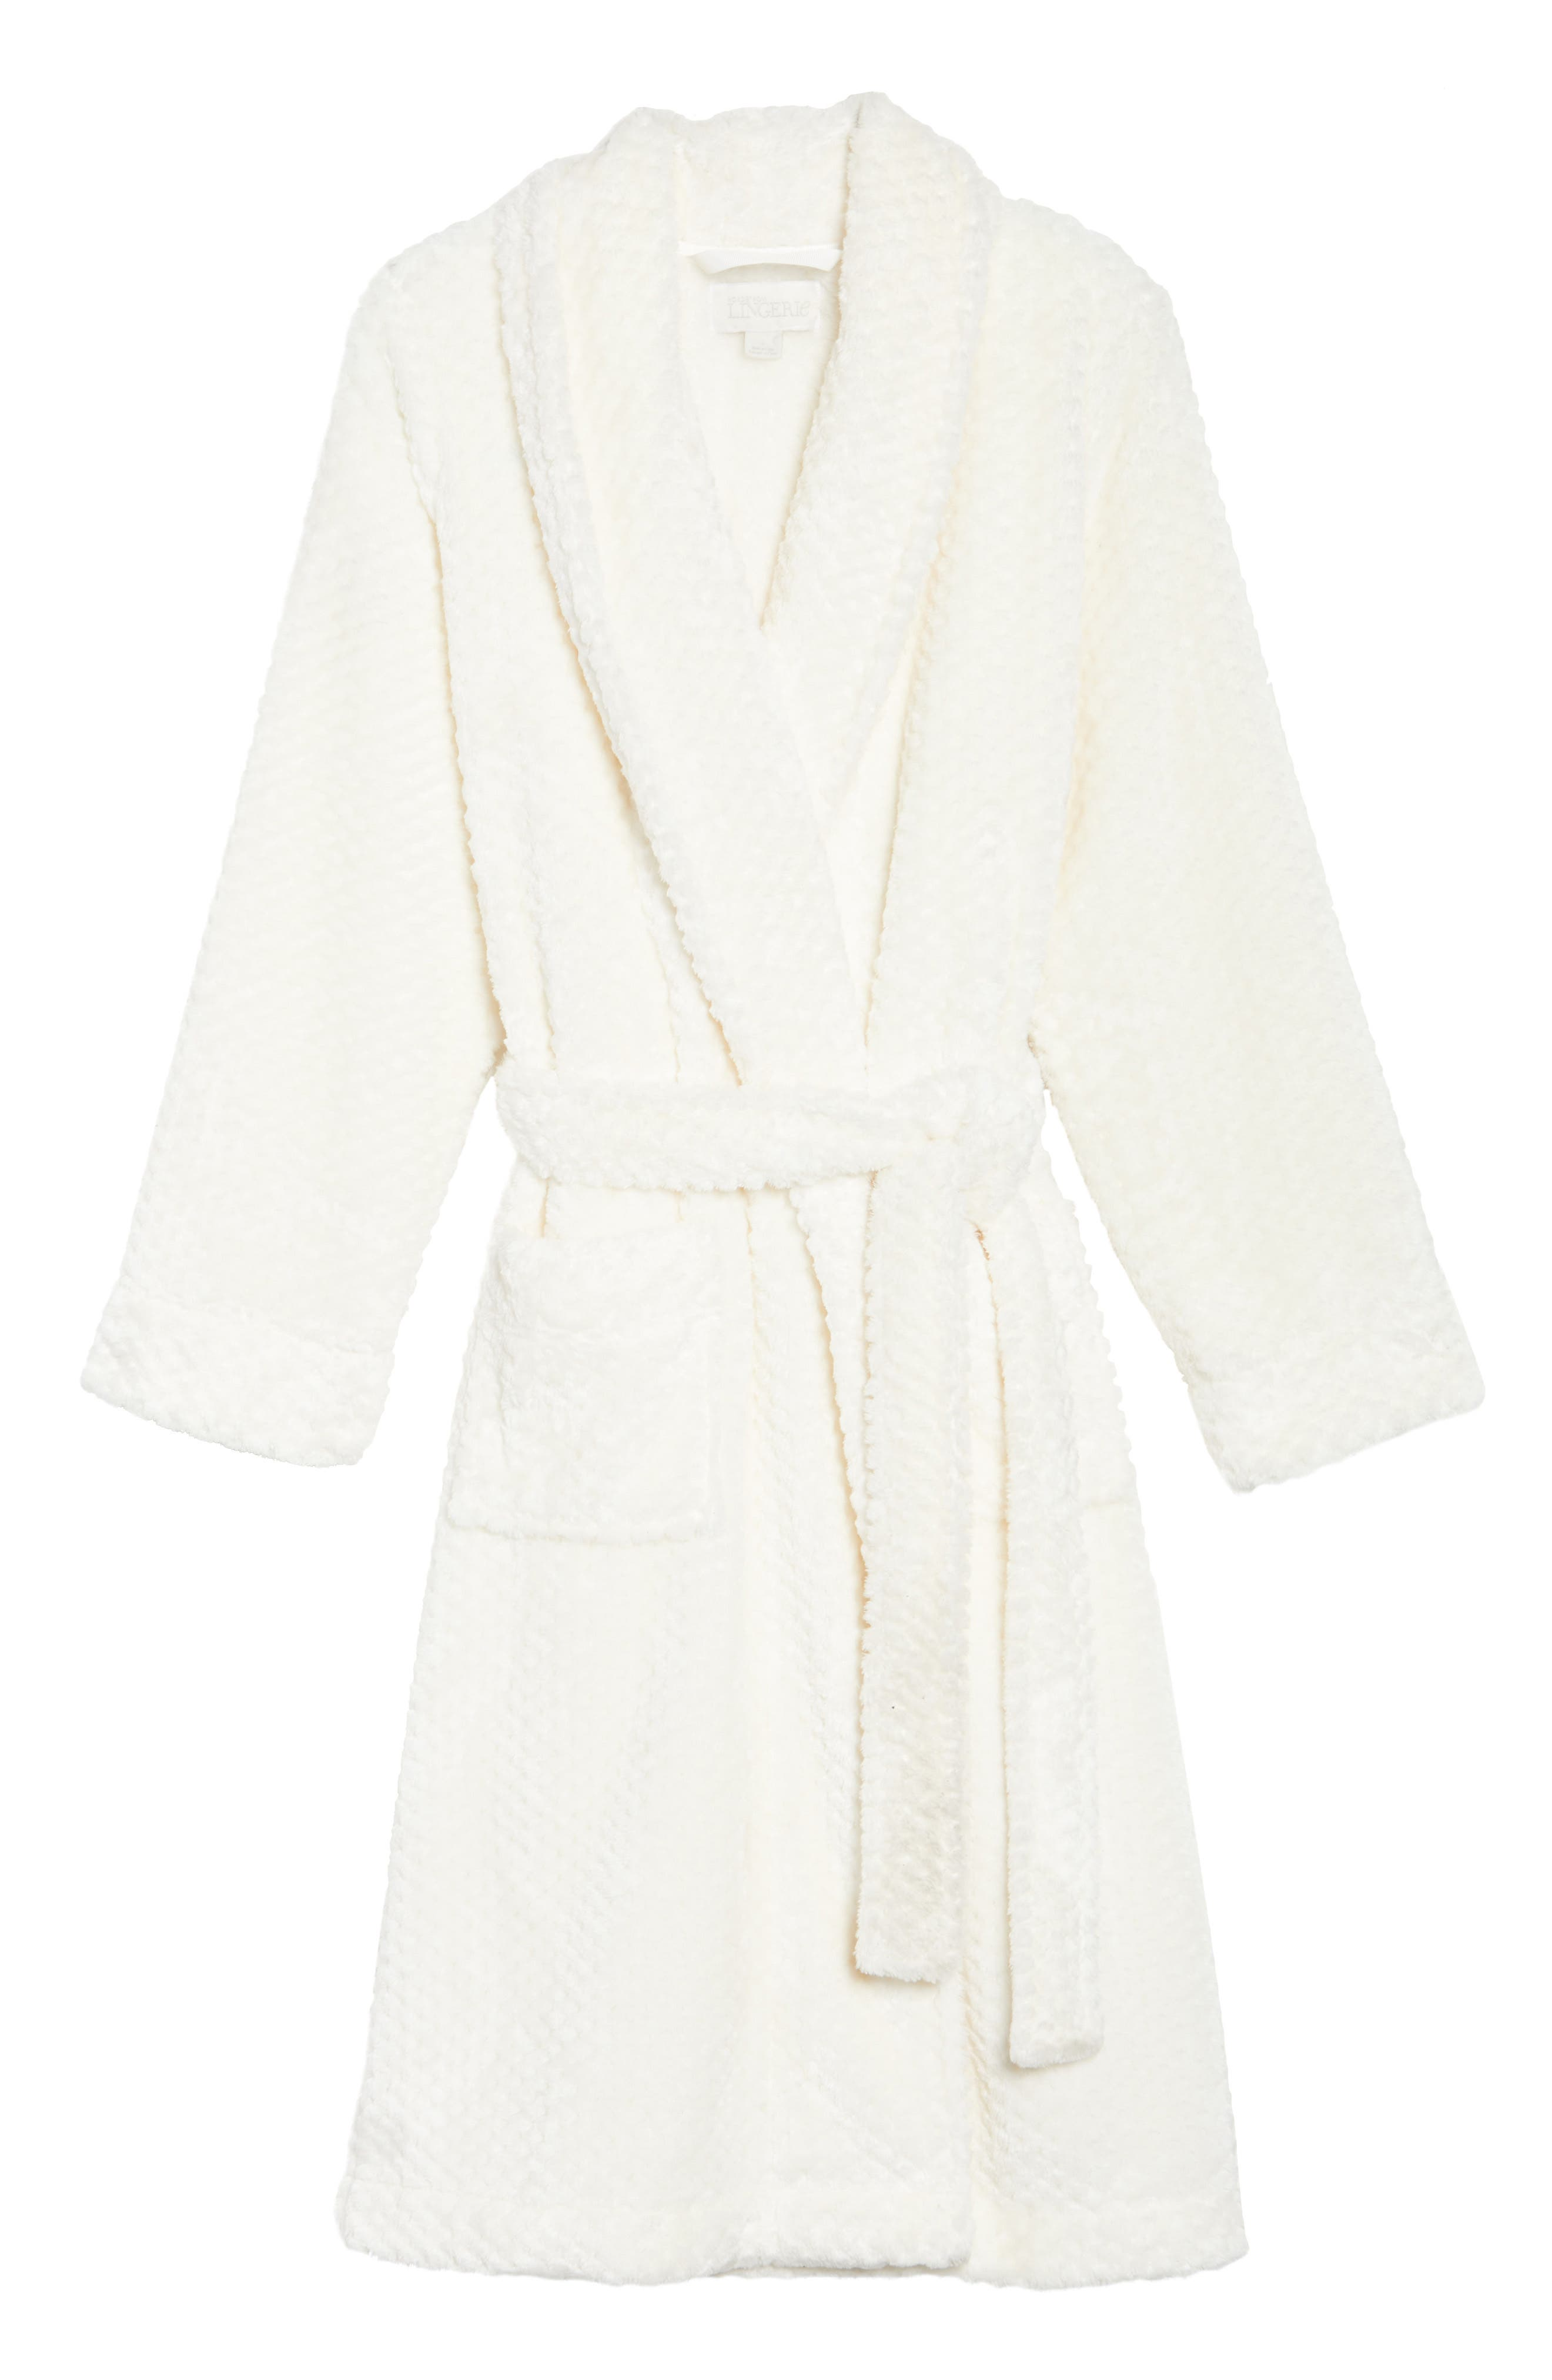 Nordstrom So Soft Plush Robe,                             Alternate thumbnail 4, color,                             Ivory Egret